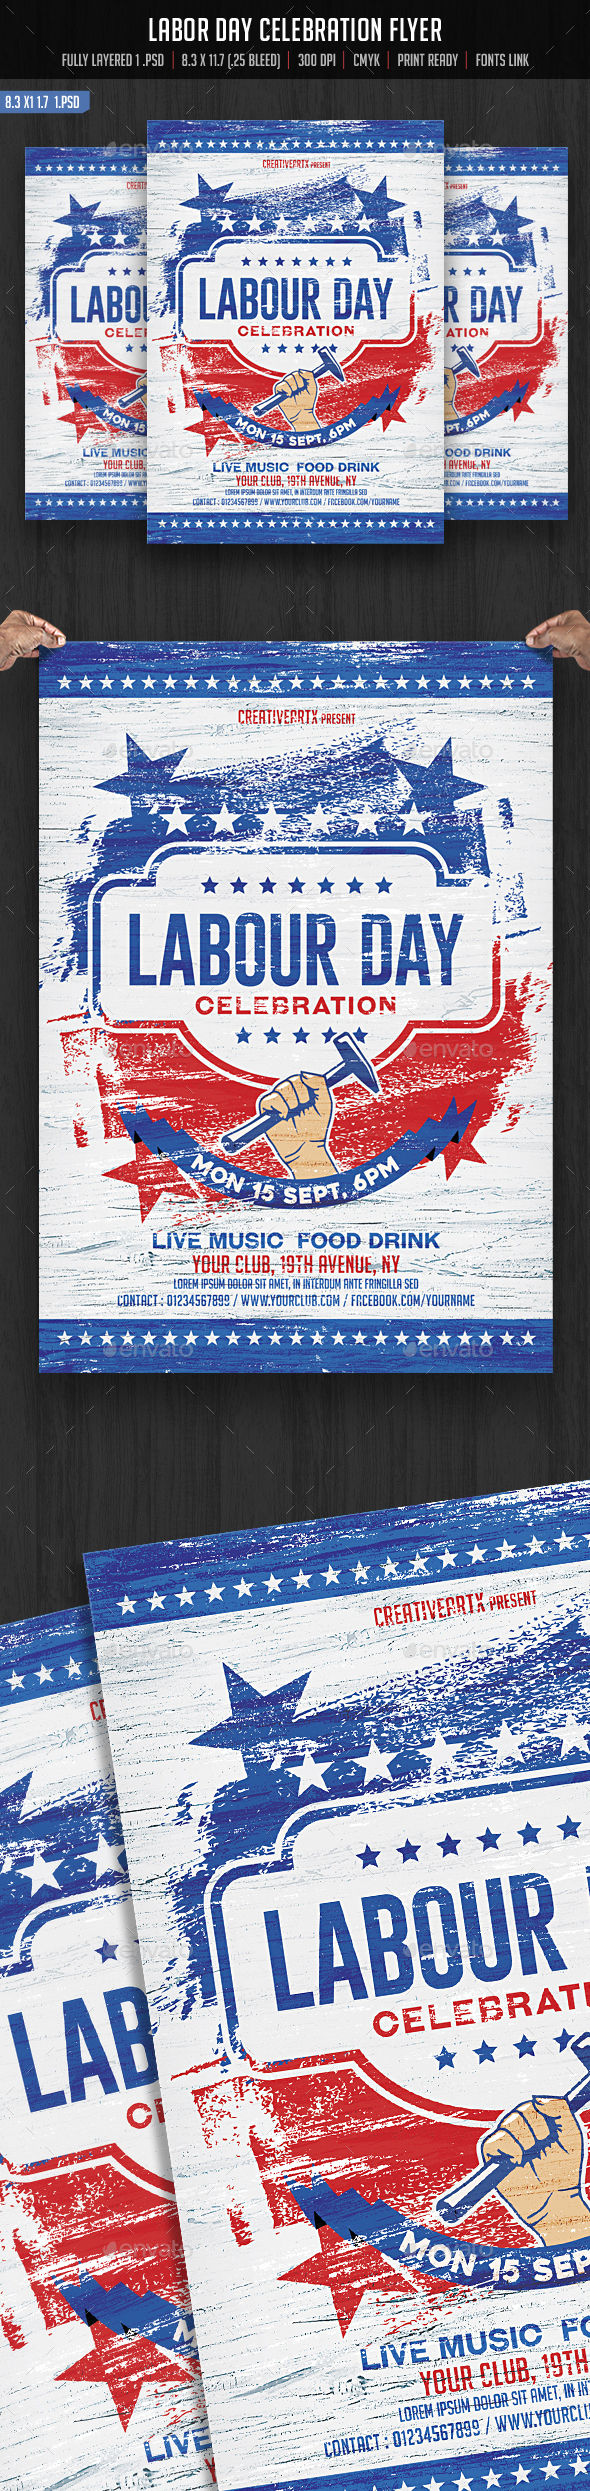 Labor Day Flyer by Creativeartx (Labor Day party flyer)